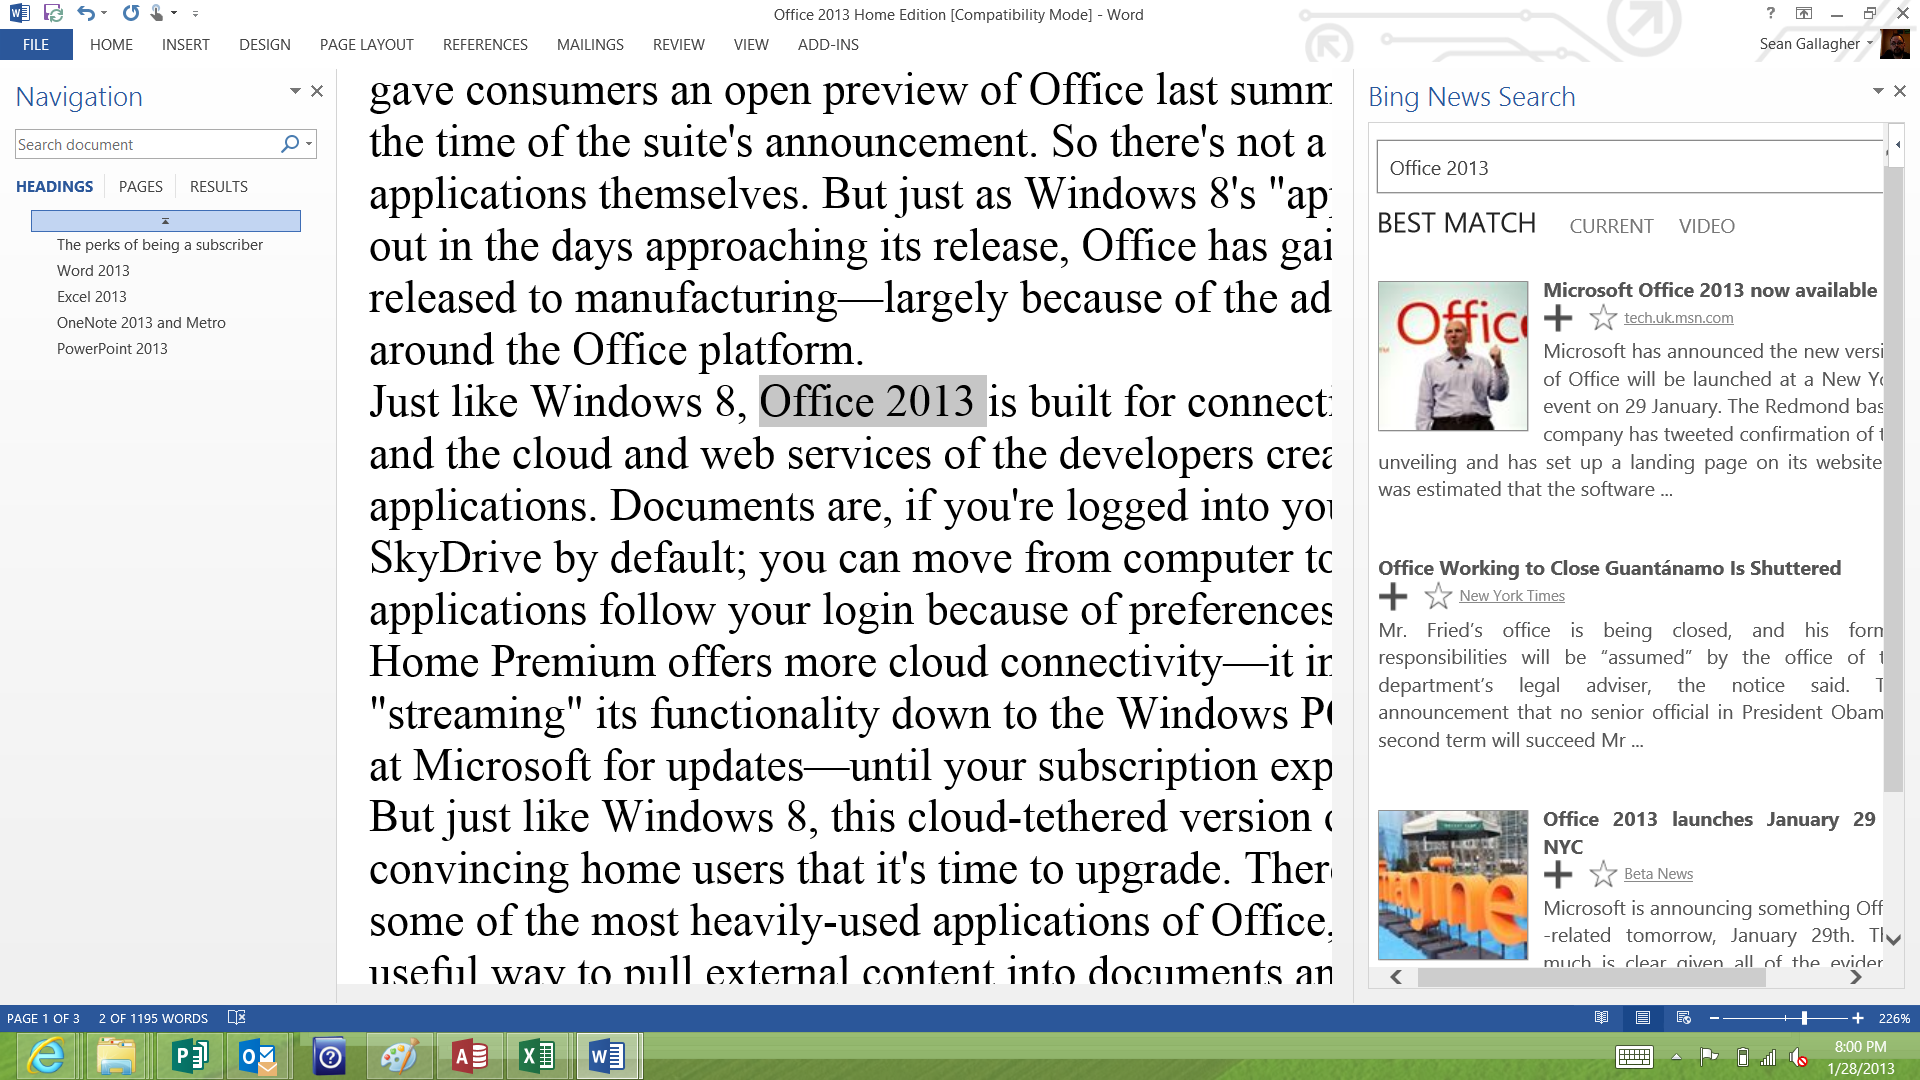 I don't think Steve Ballmer would be pleased to see Office 2013 associated with Gitmo.